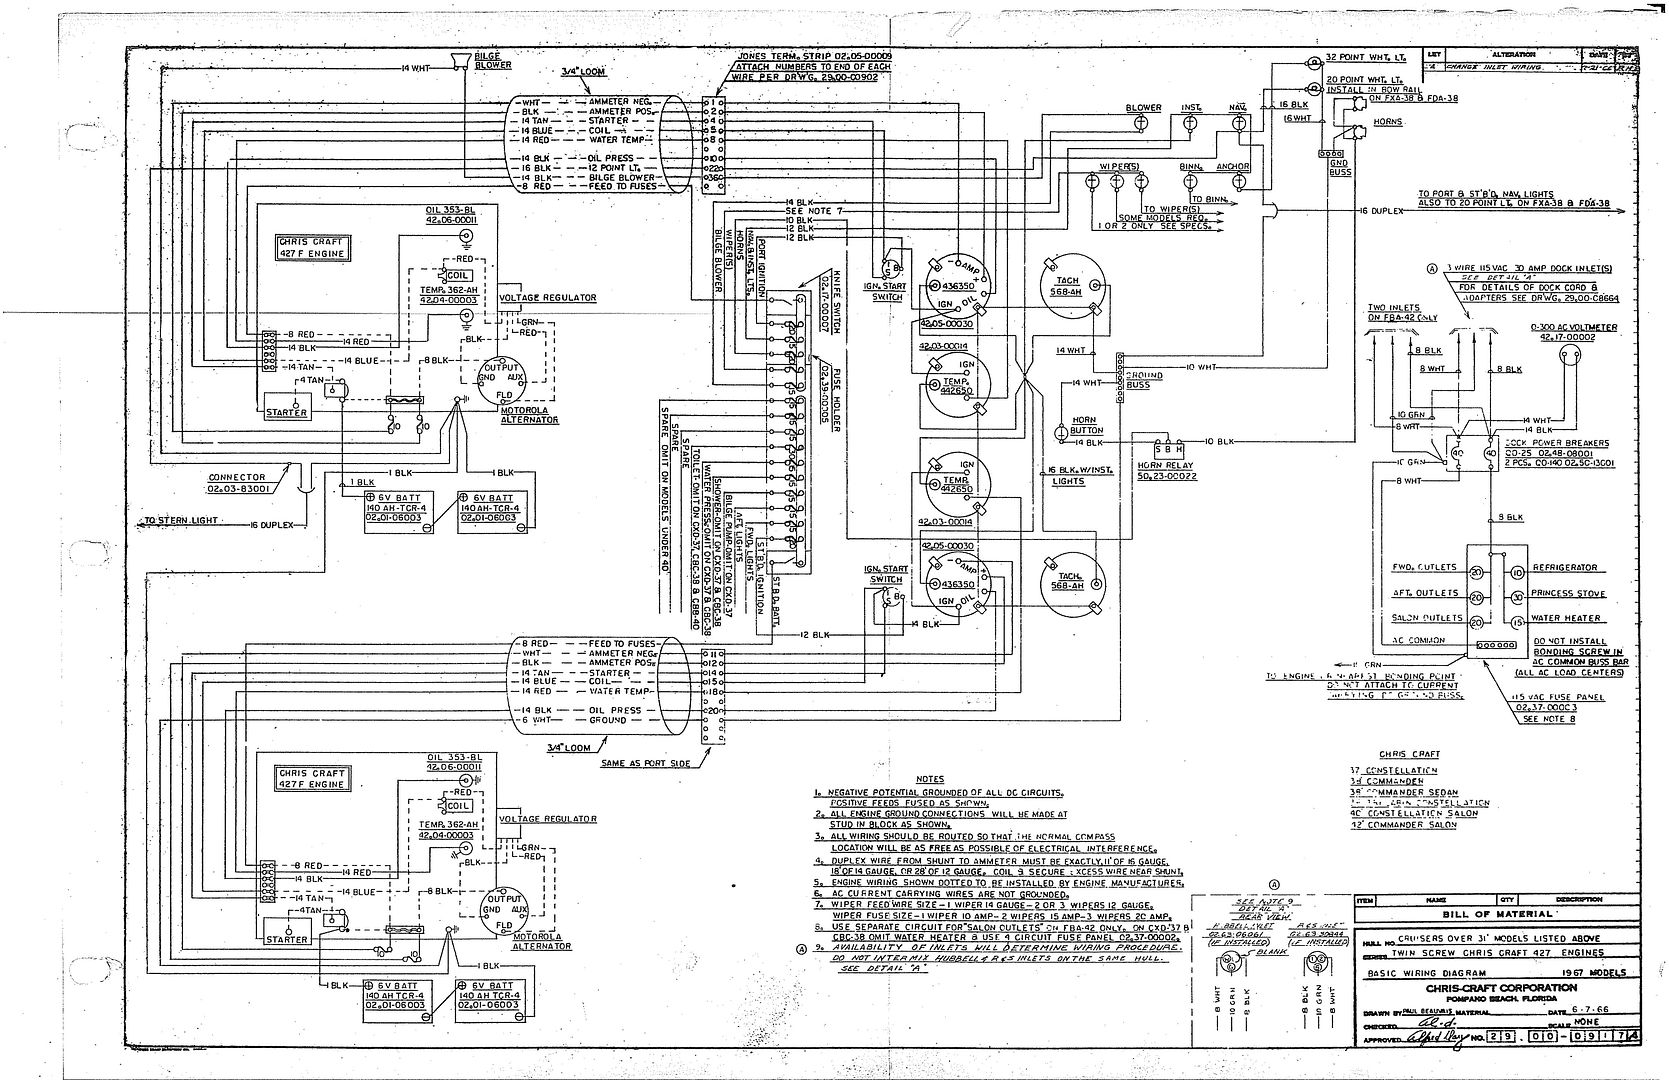 Dynojet Power Commander 3 Wiring Diagram